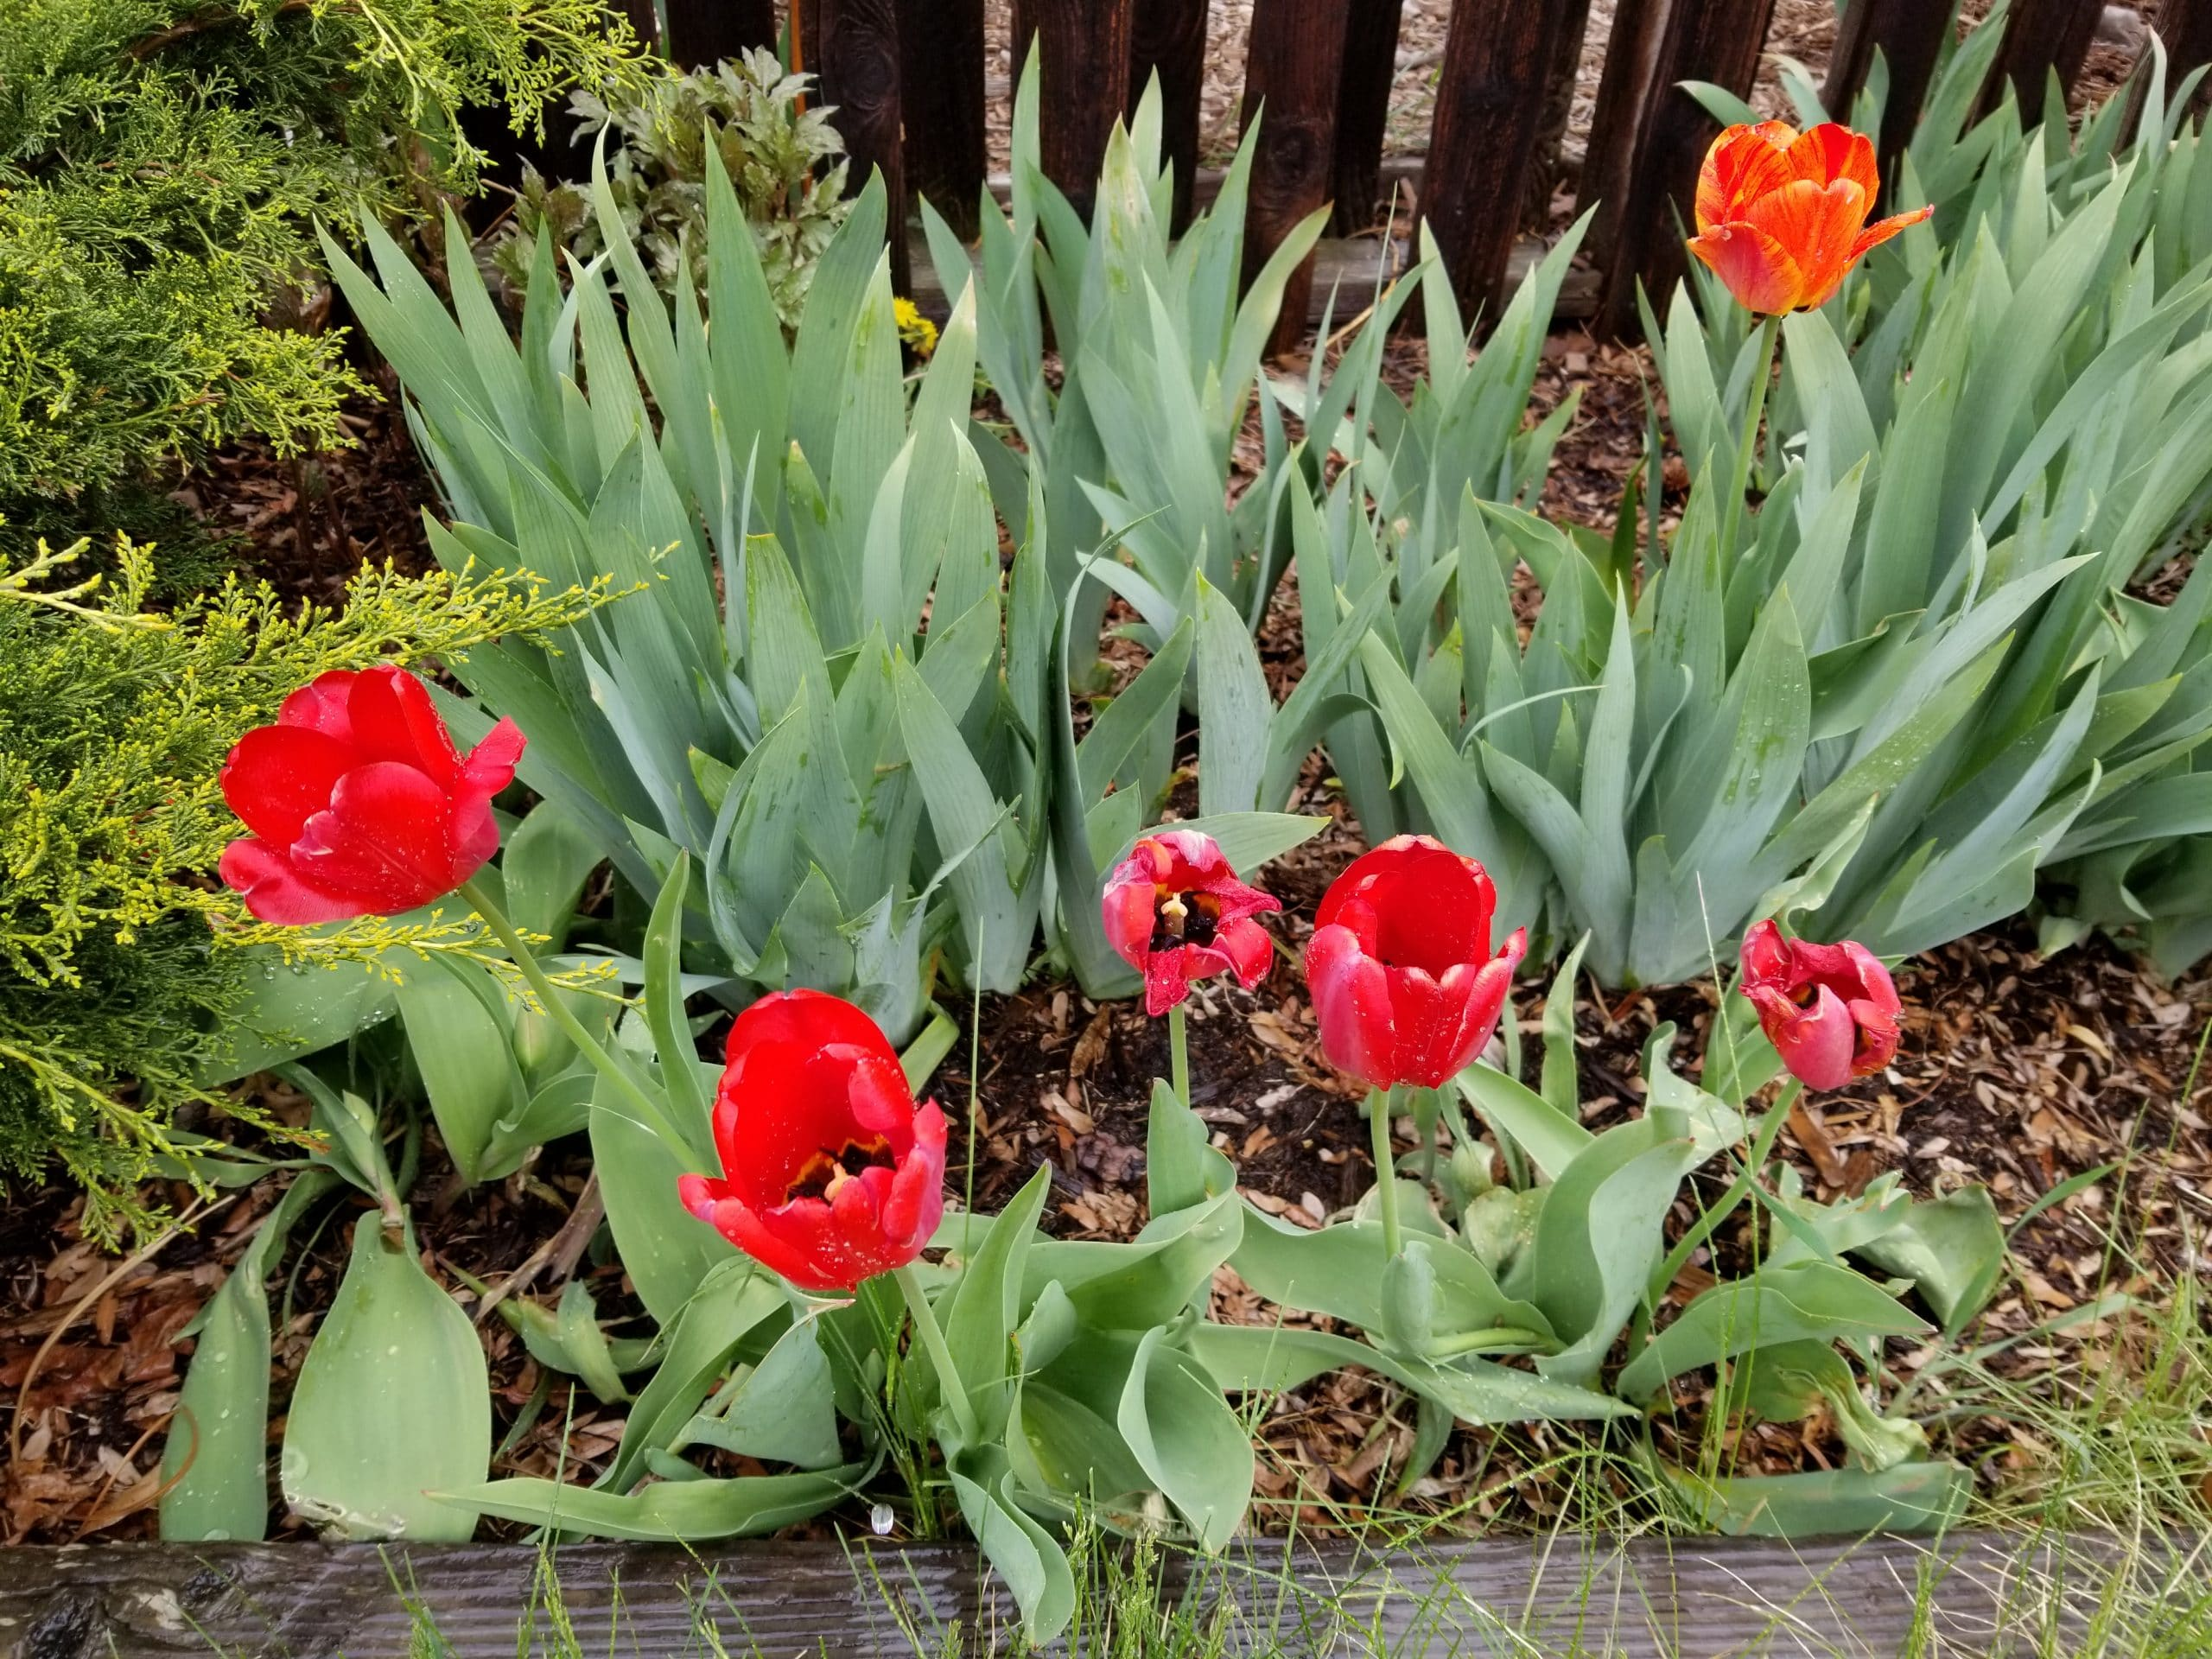 My garden experiment panned out! I now have a wide array of perennials, including these beautiful red tulips, that serve as a reminder that a bit of planning and hard work can really pay off.